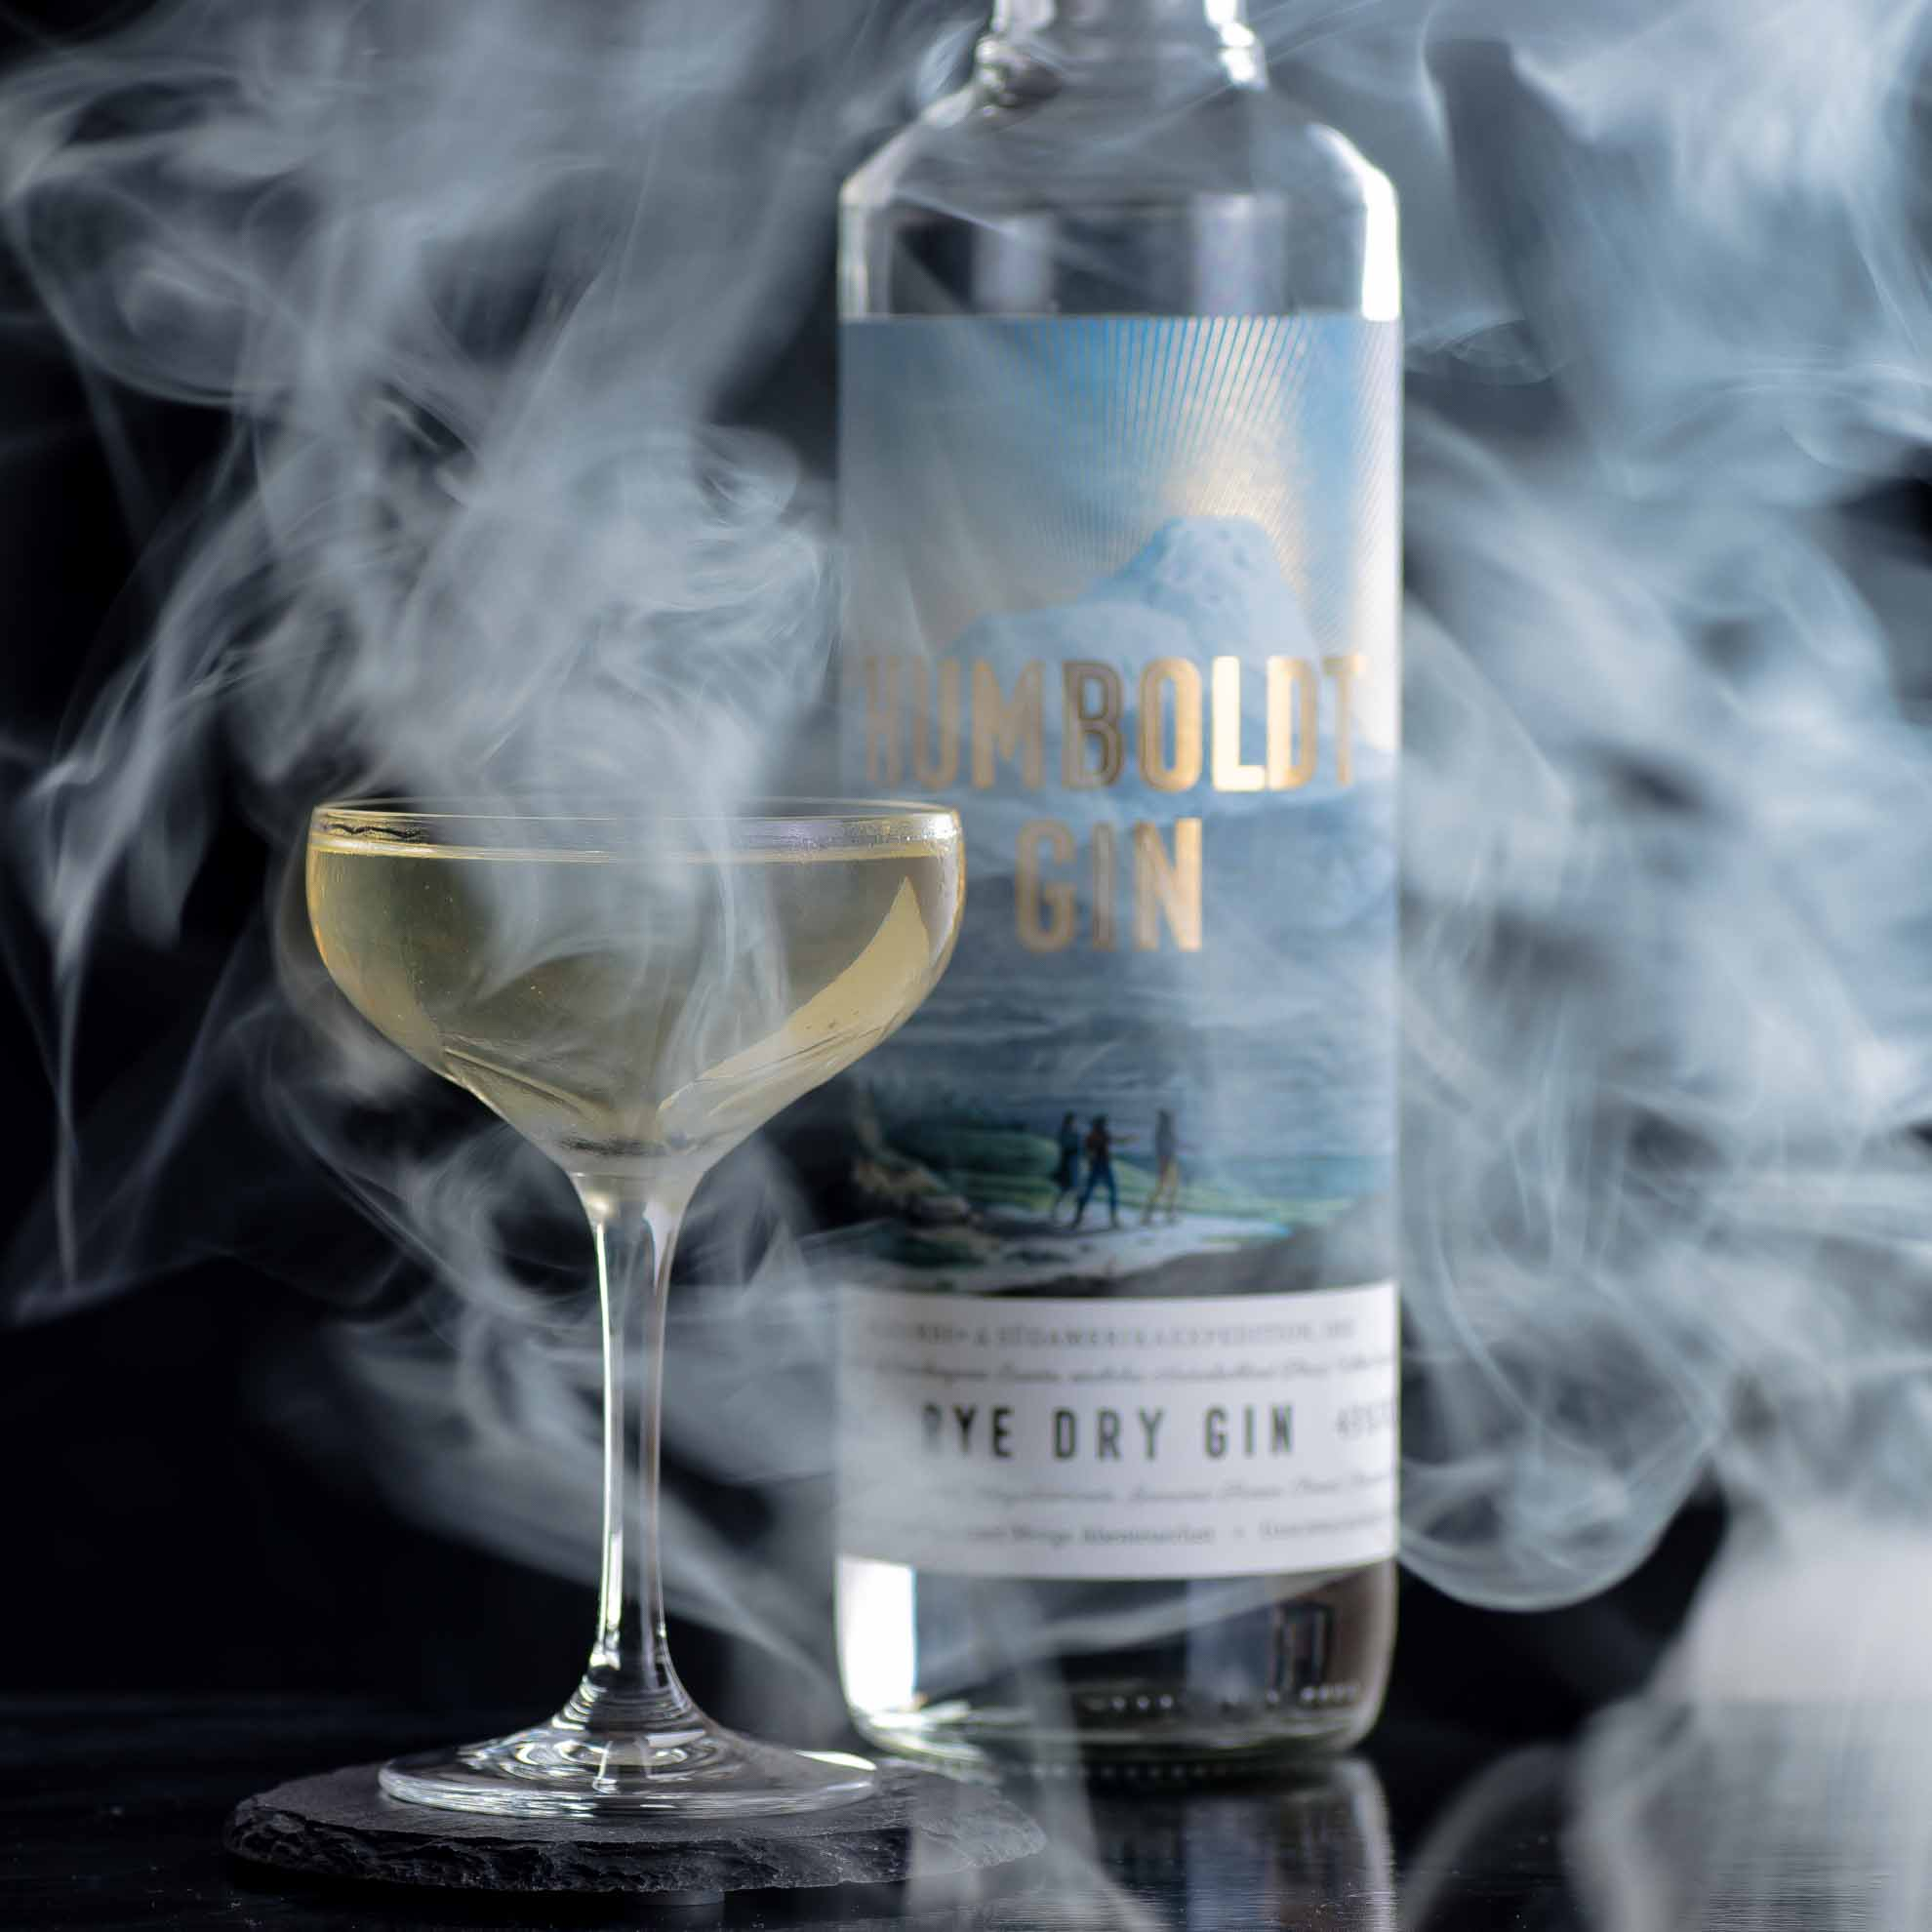 Humboldt Rye Dry Gin im Smoky Martini mit Scotch.